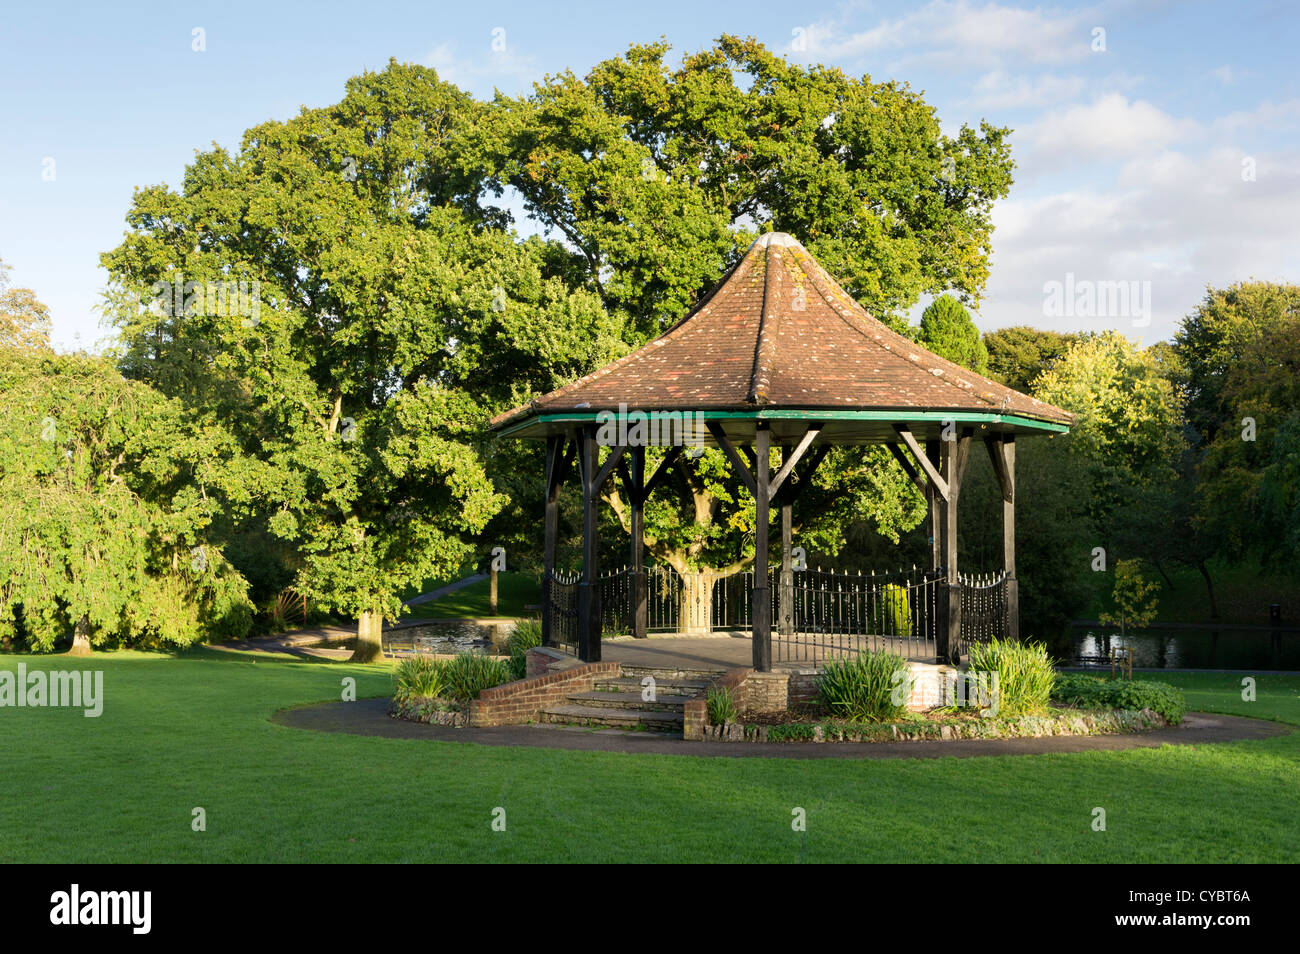 Bandstand in an urban park in Shepton Mallet, Somerset, England, UK - Stock Image